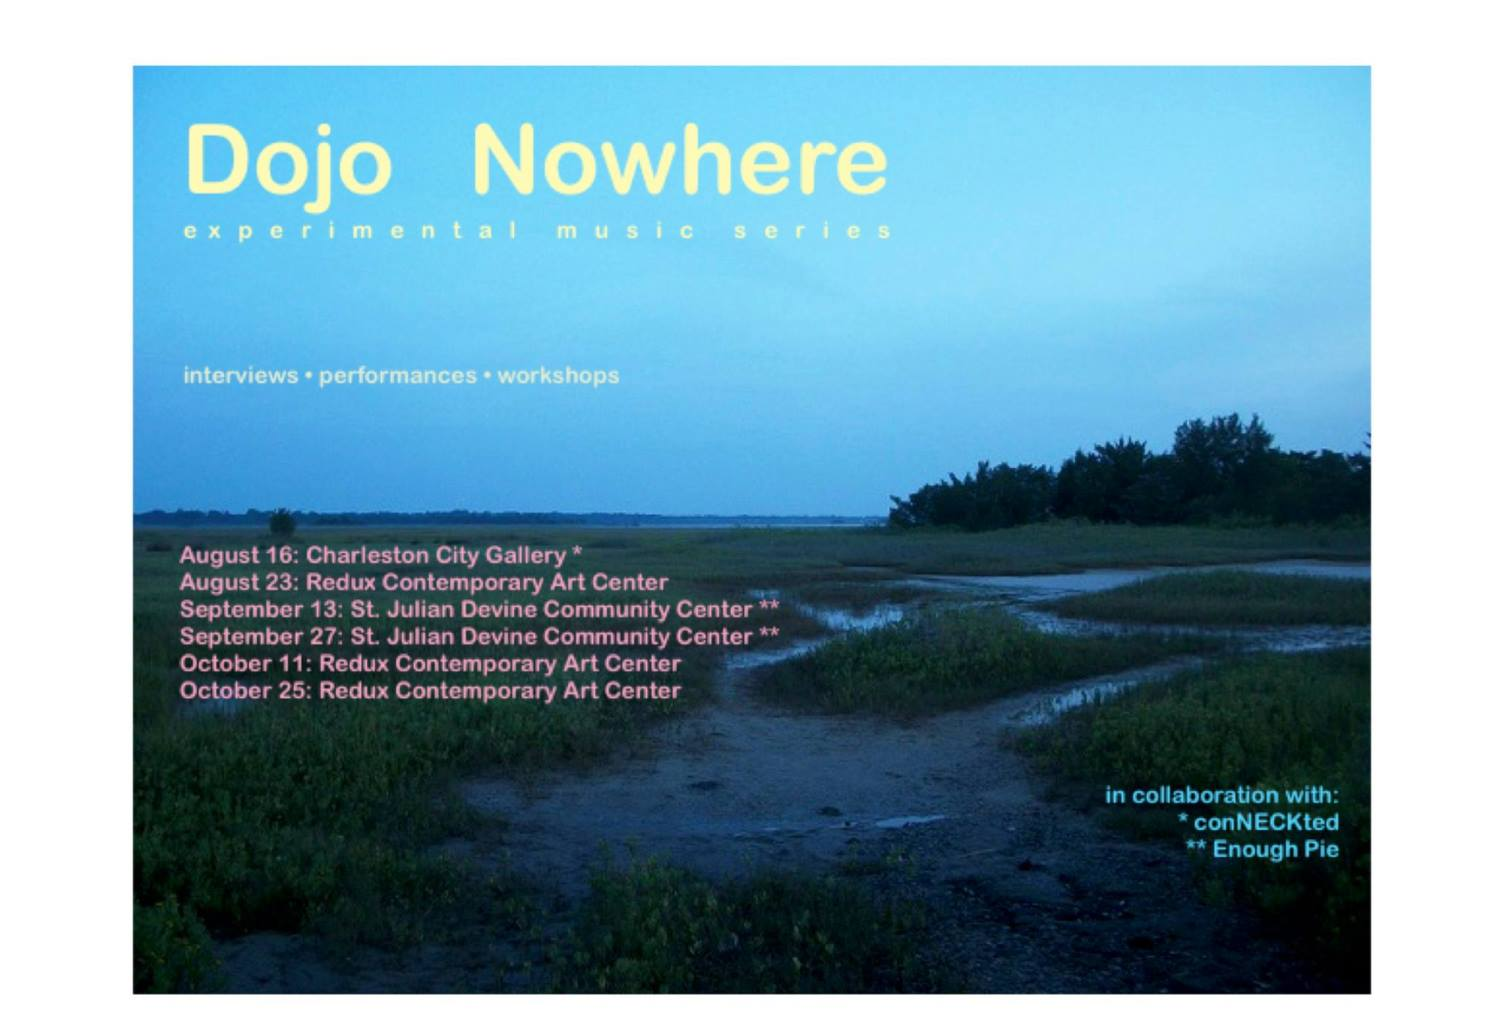 DOJO NOWHERE curated by Nic Jenkins